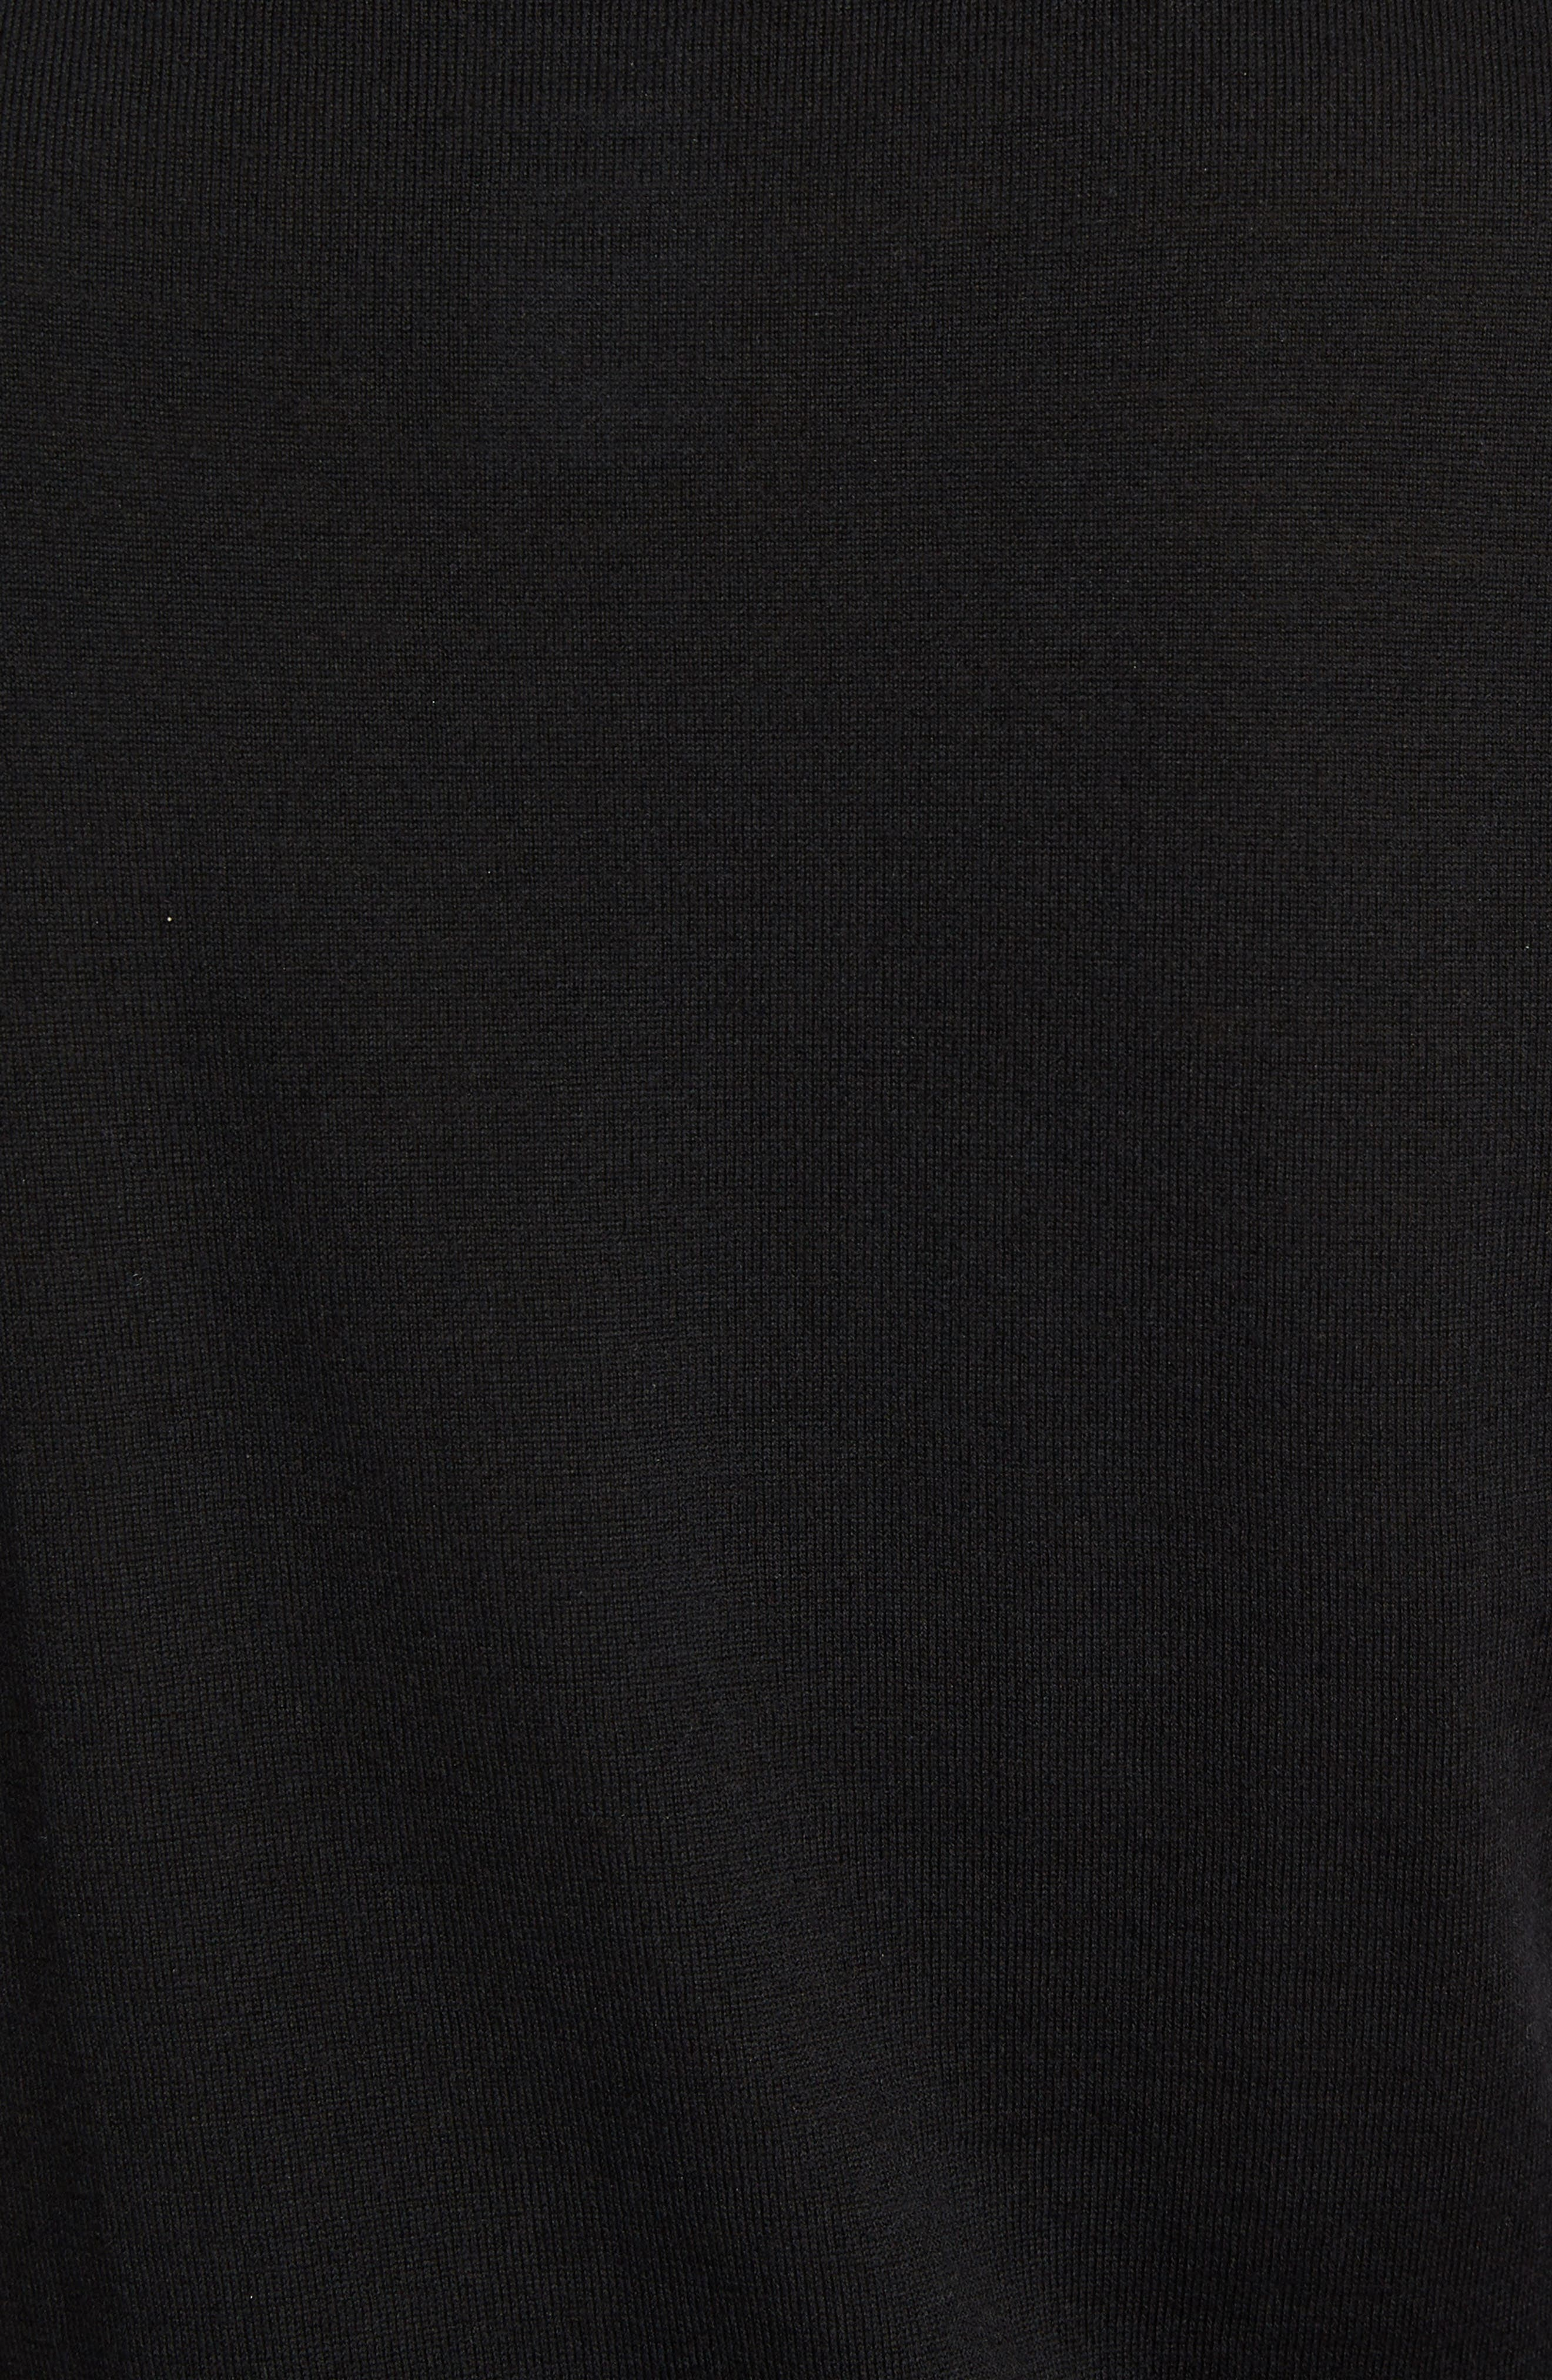 Lace Inset Wool Blend Sweater,                             Alternate thumbnail 5, color,                             Black